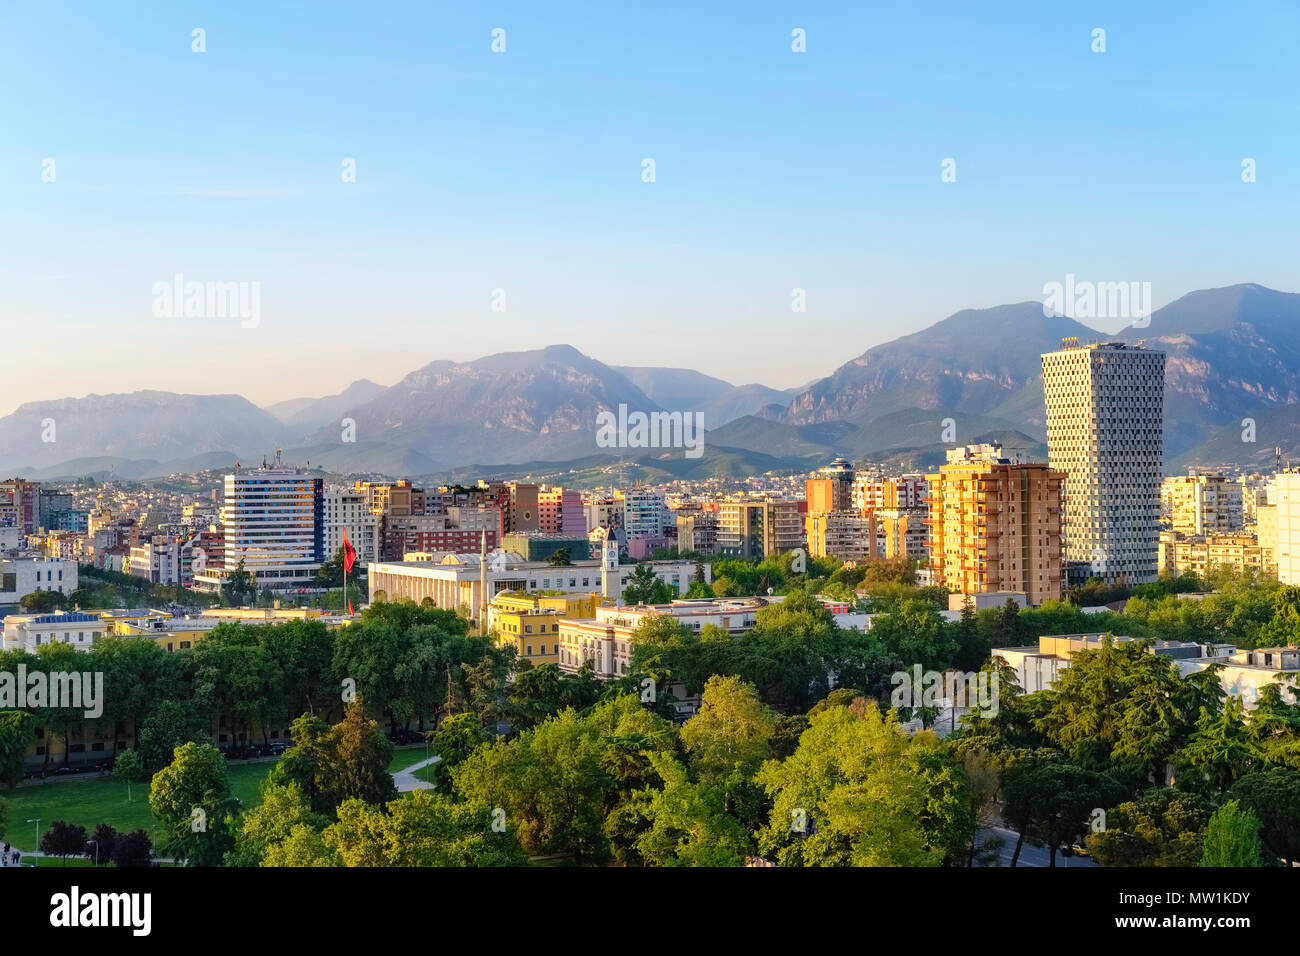 City view, city centre with culture palace and TID Tower, view from Sky Tower, mountains in the back, Tirana, Albania - Stock Image